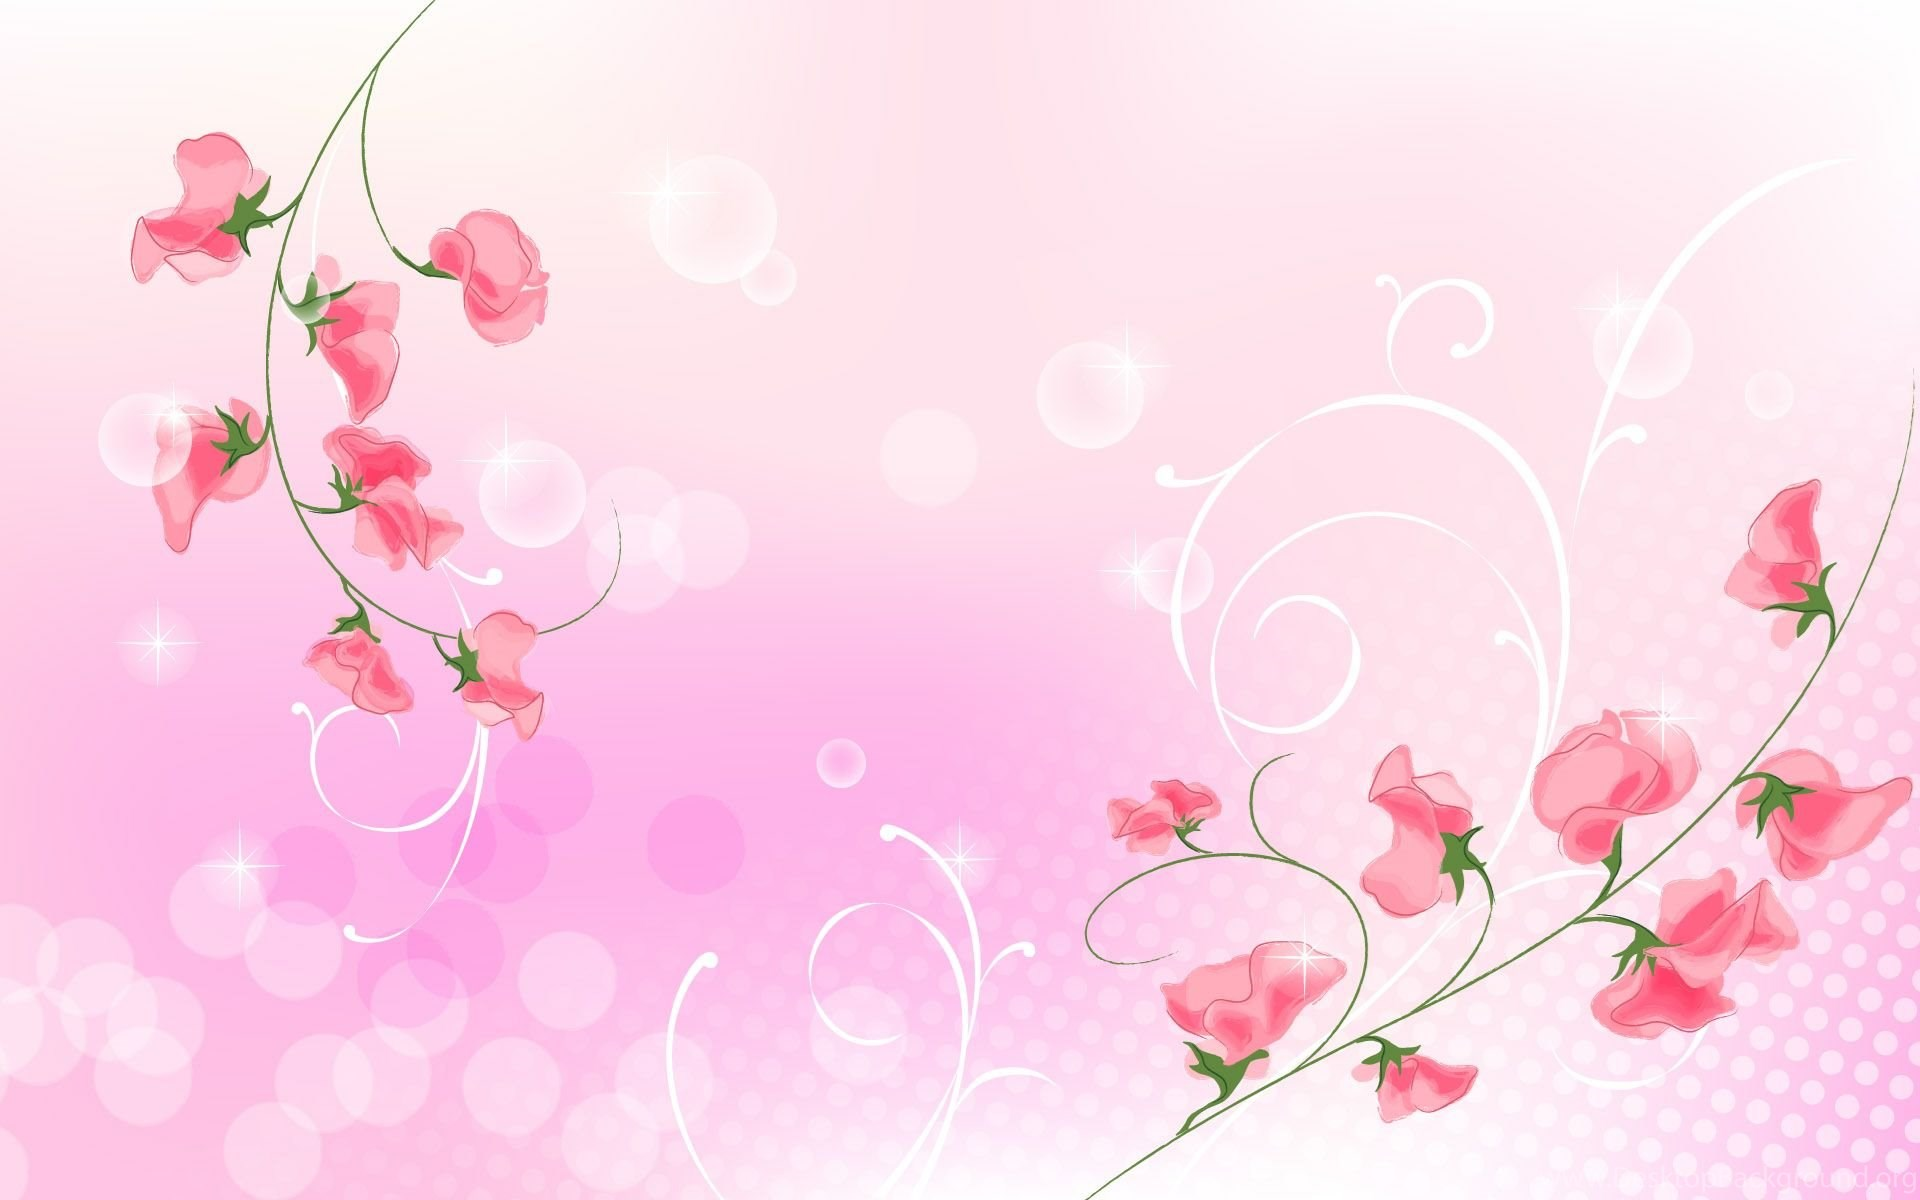 Pink Flower Wallpaper Backgrounds Wallpapers Cave Desktop Background